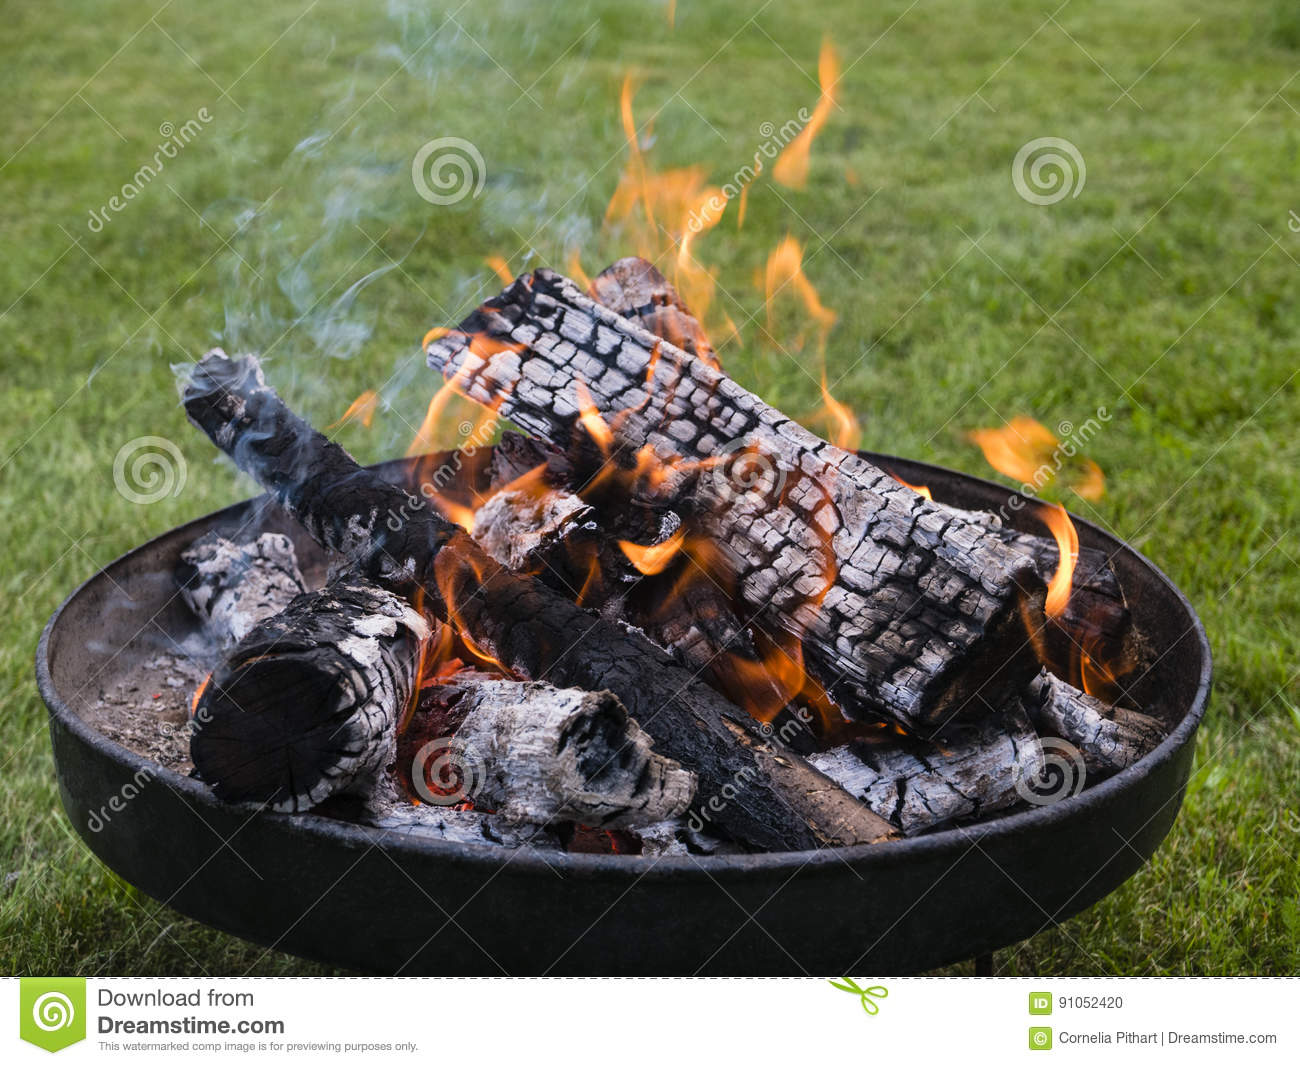 Fire Bowl stock photo. Image of format, outdoor, fireplace - 91052420